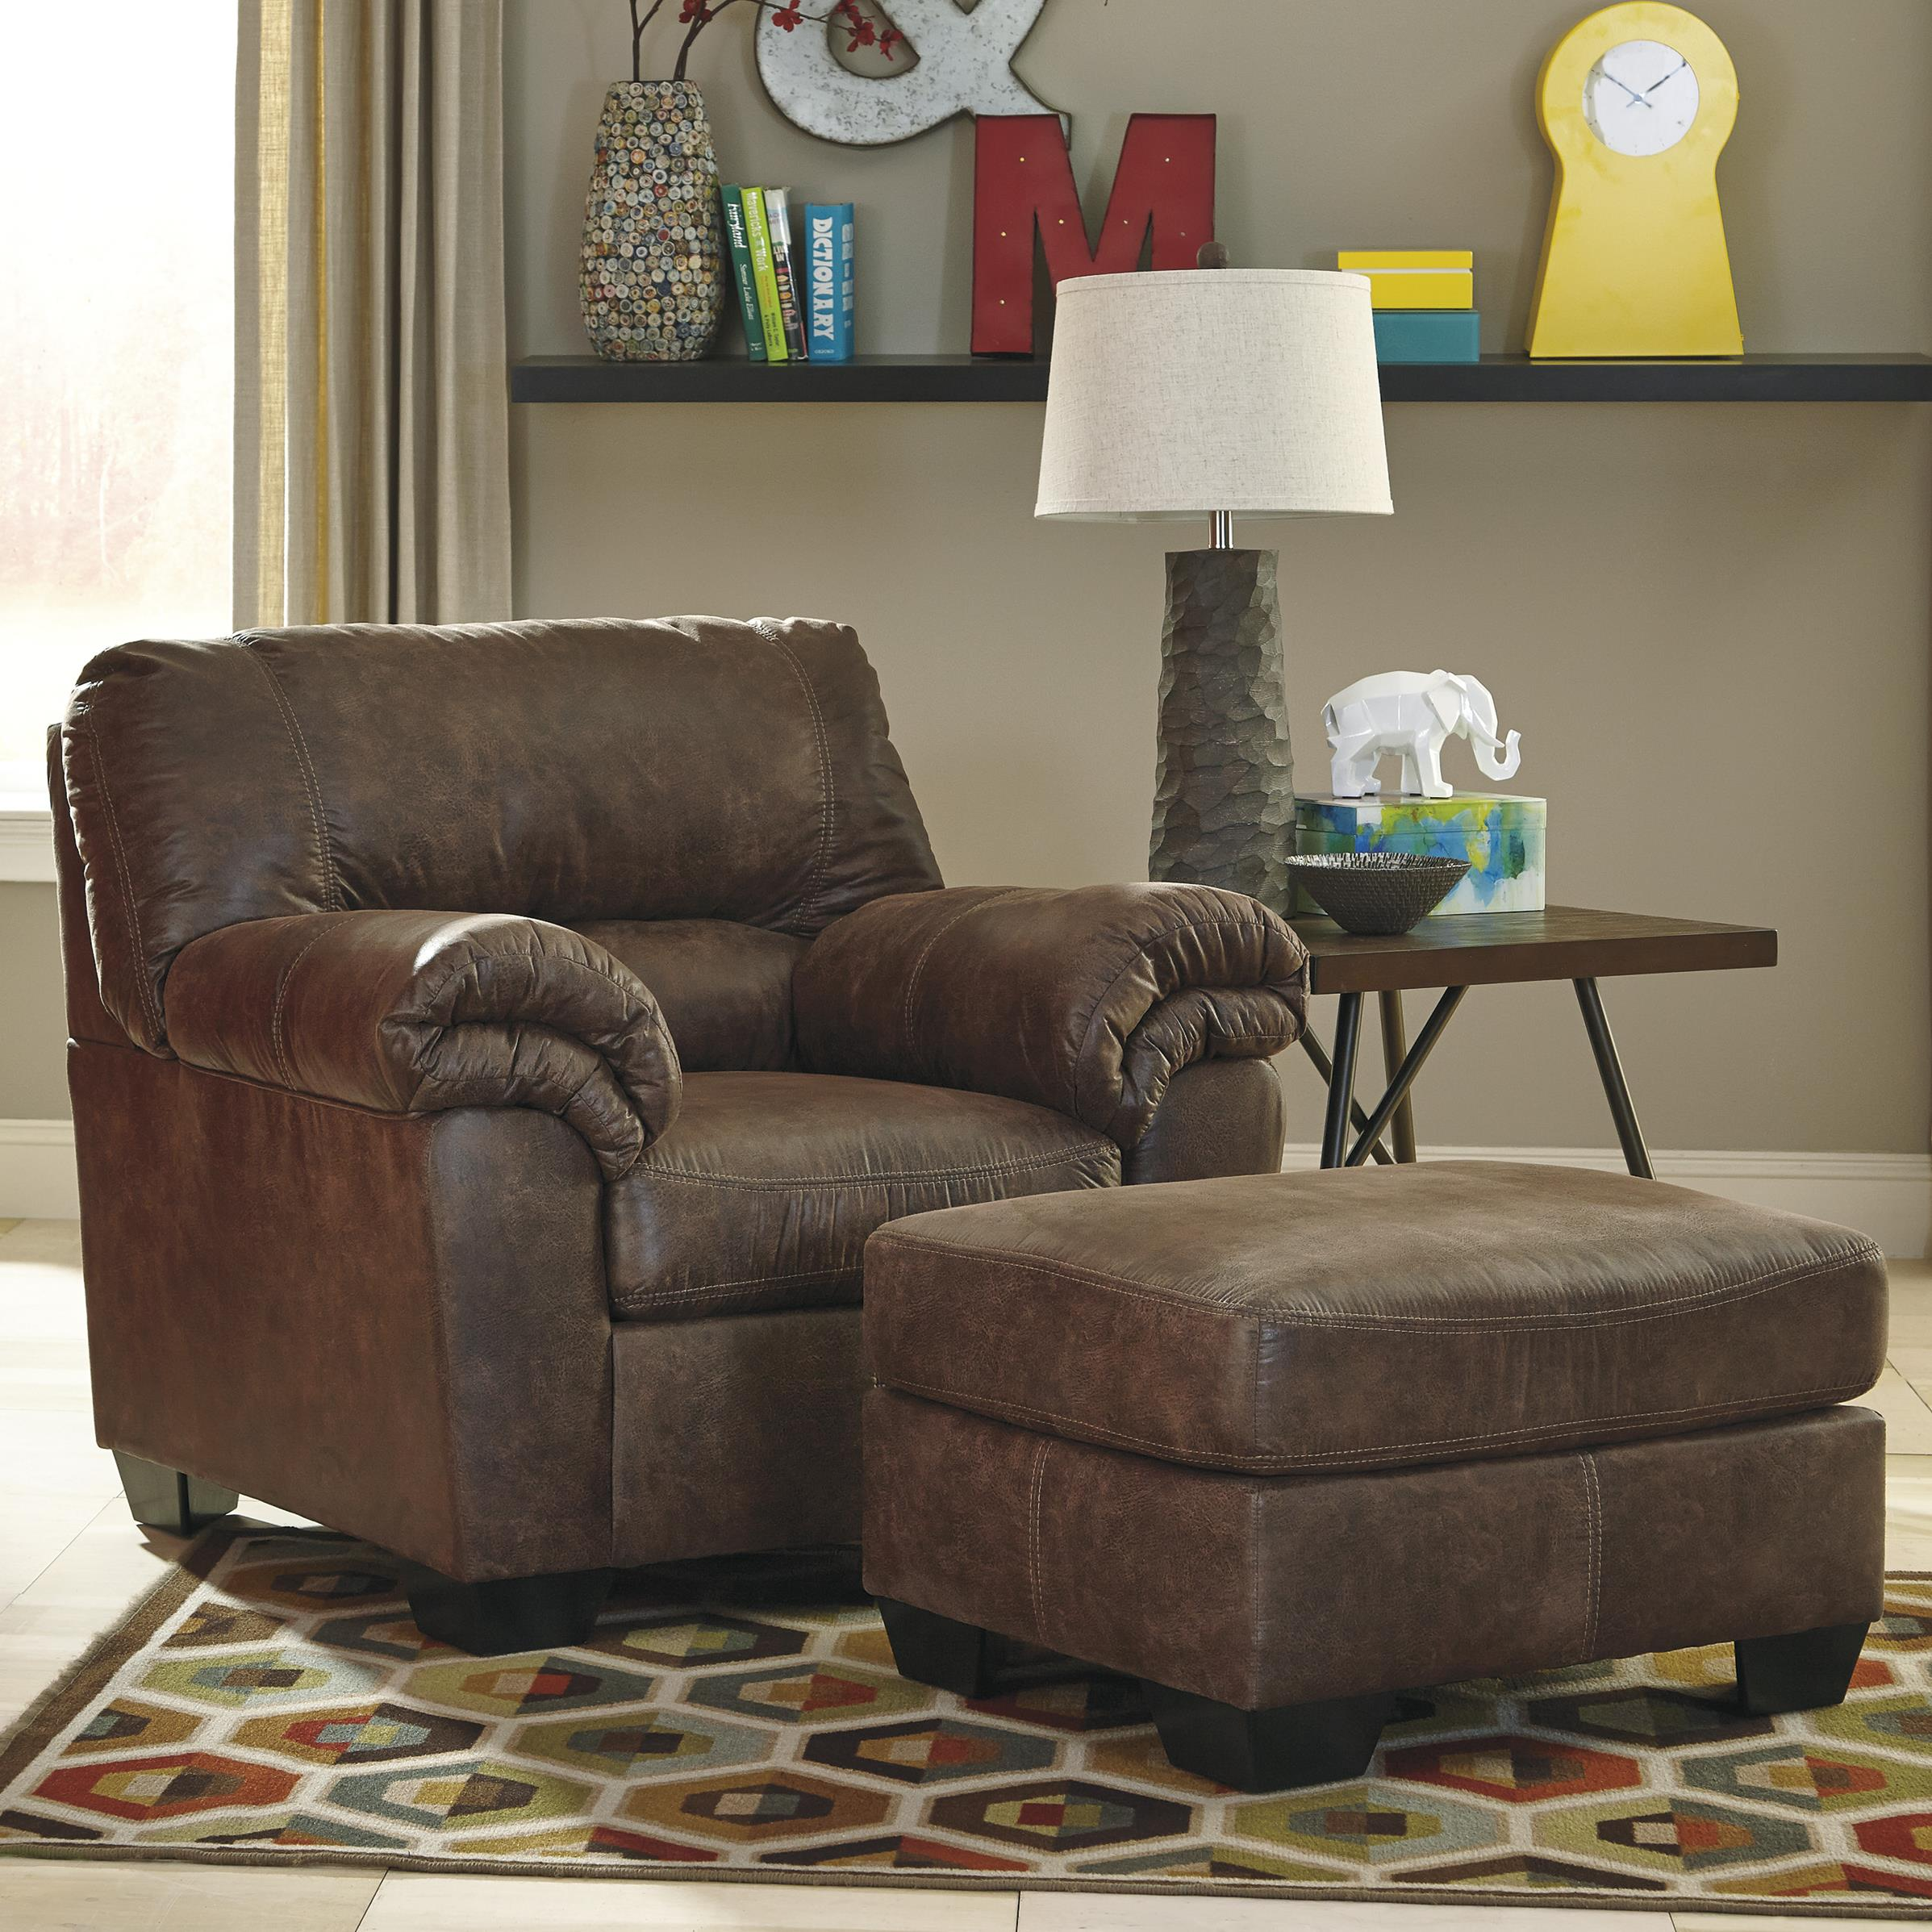 Faux Leather Chair Casual Faux Leather Chair And Ottoman By Signature Design By